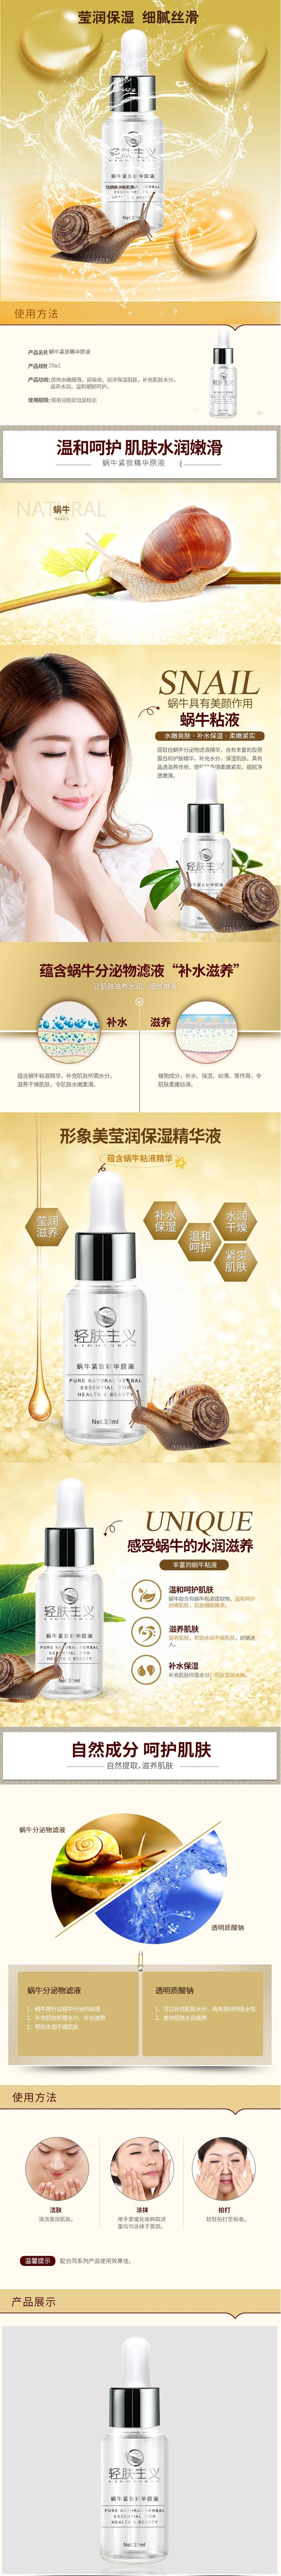 Face Care Moisturizing Snail Facial Cream Acne Treatment Oil-Control Whitening Repairing Anti-Aging Face Masks Beauty Skin Care